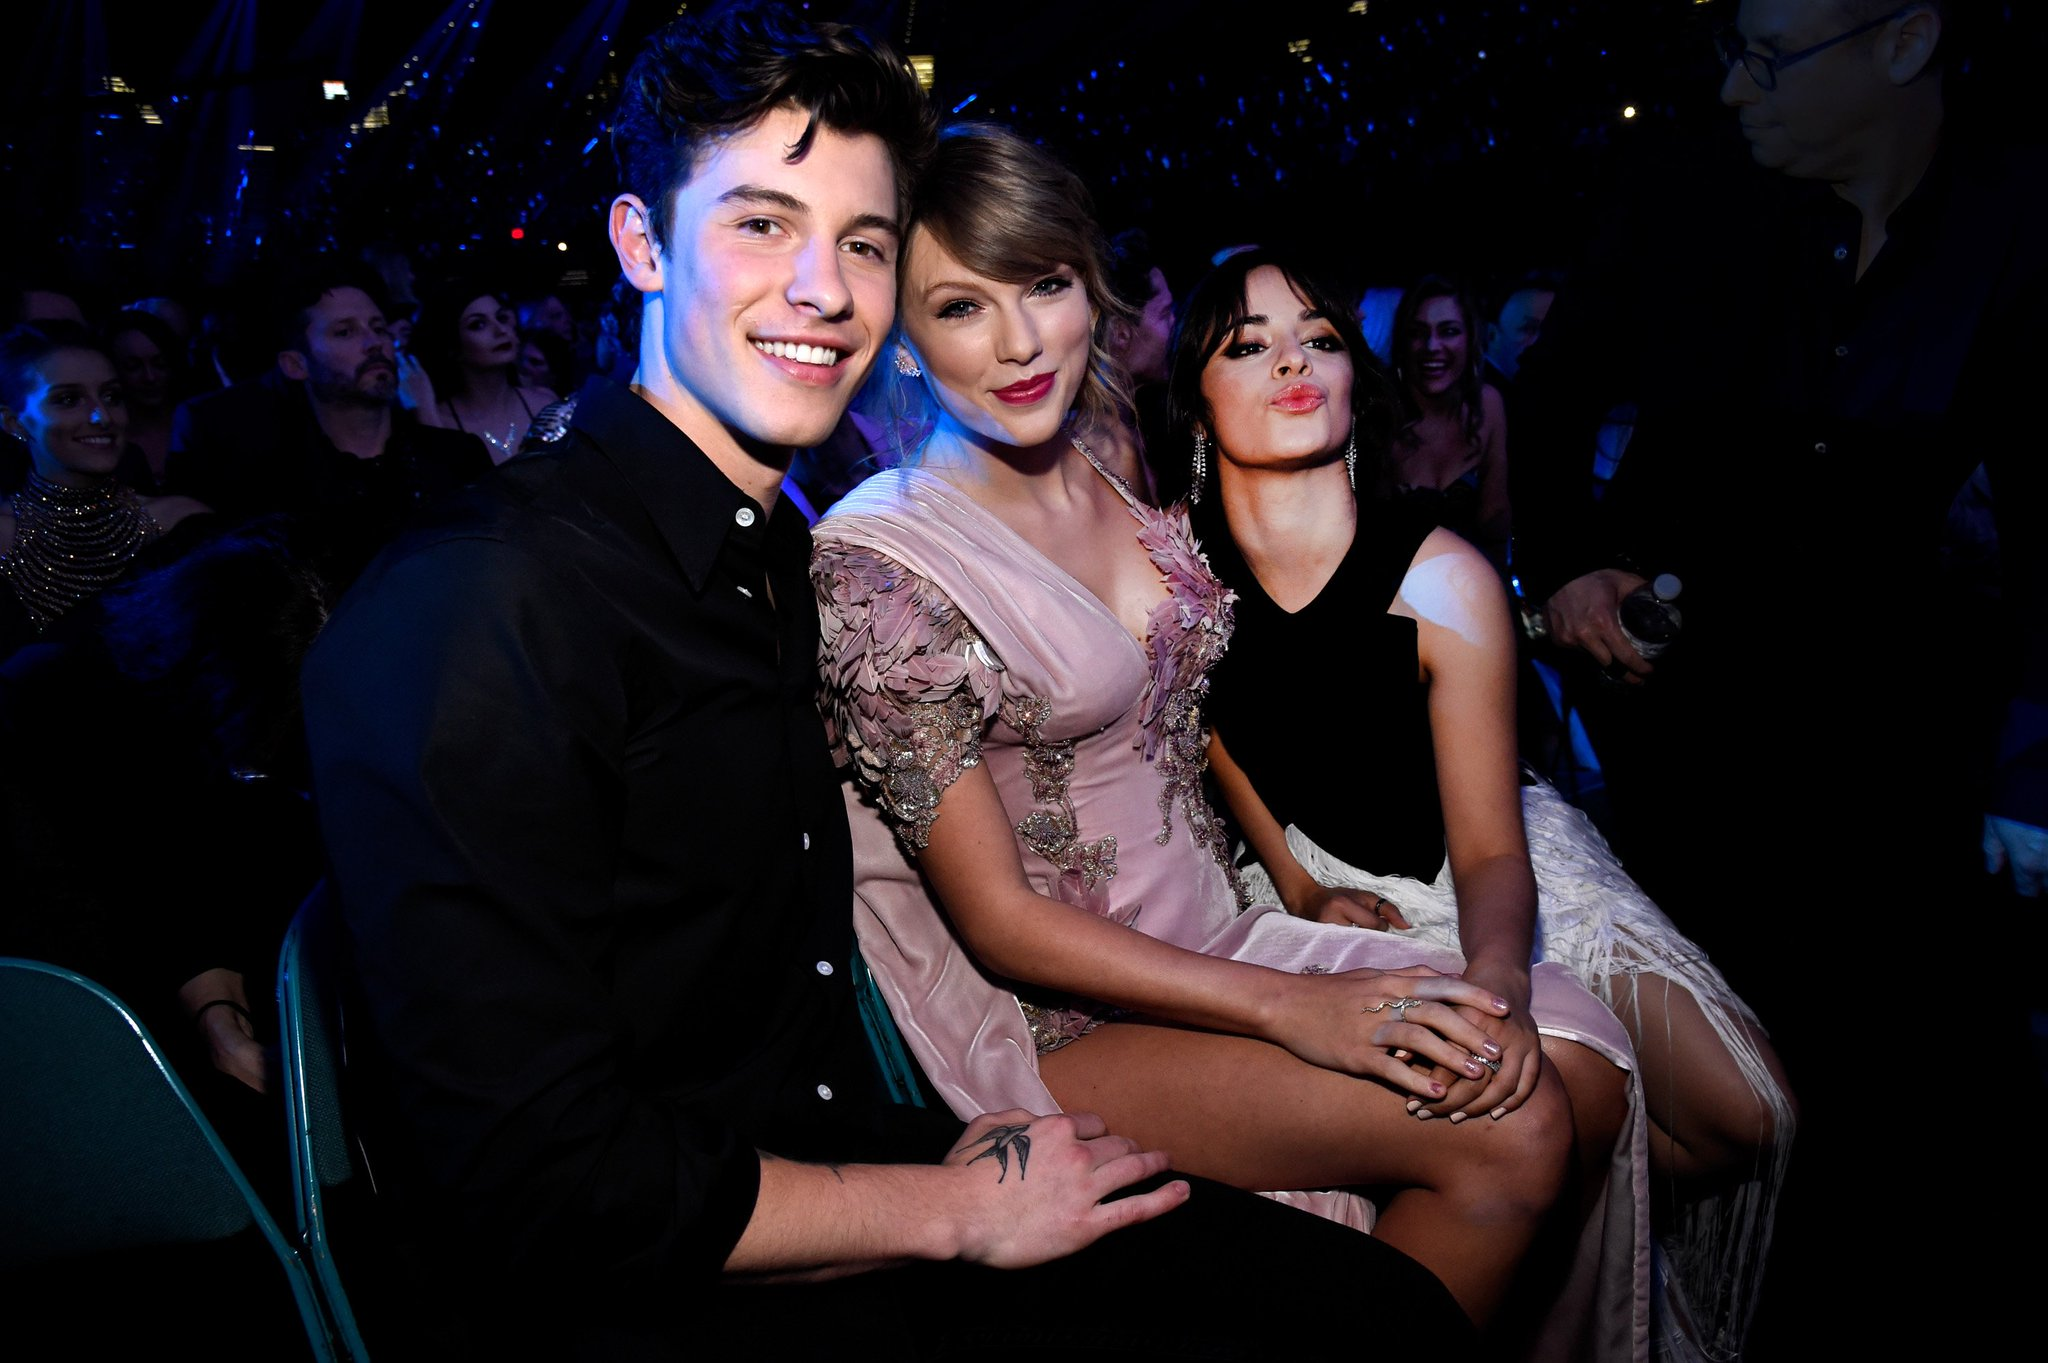 Whose #BBMAs squad would you want to join? #ShawnTaylorCamila #ARMY https://t.co/b2QzdbTghQ